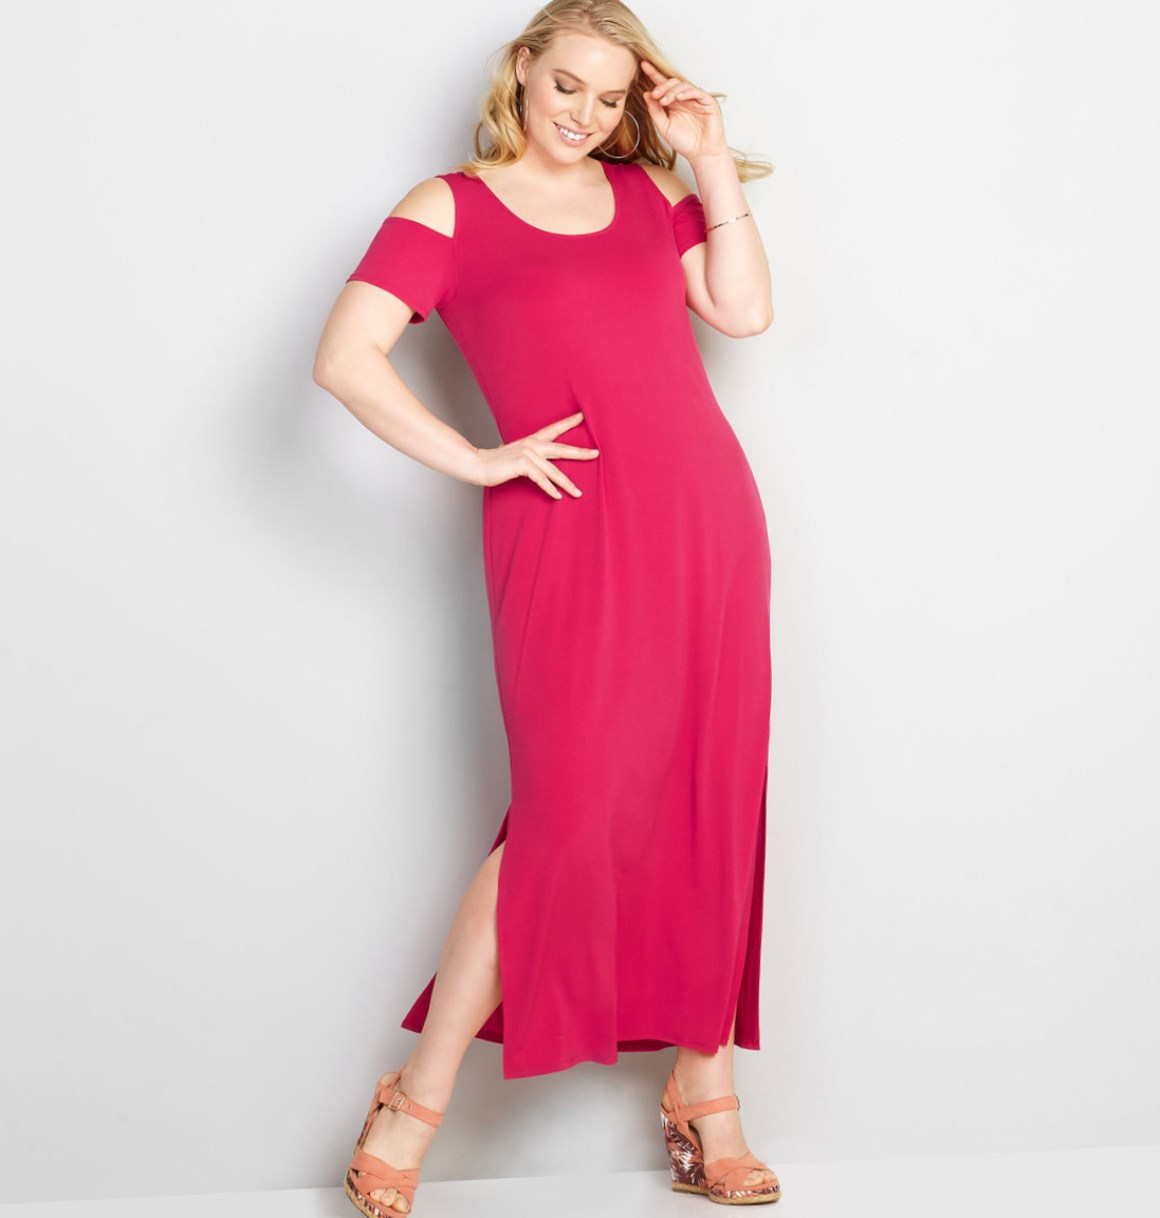 be4cef22b4f This plus size dress is youthful and comfortable. It has knee-length splits  on each side for a looser